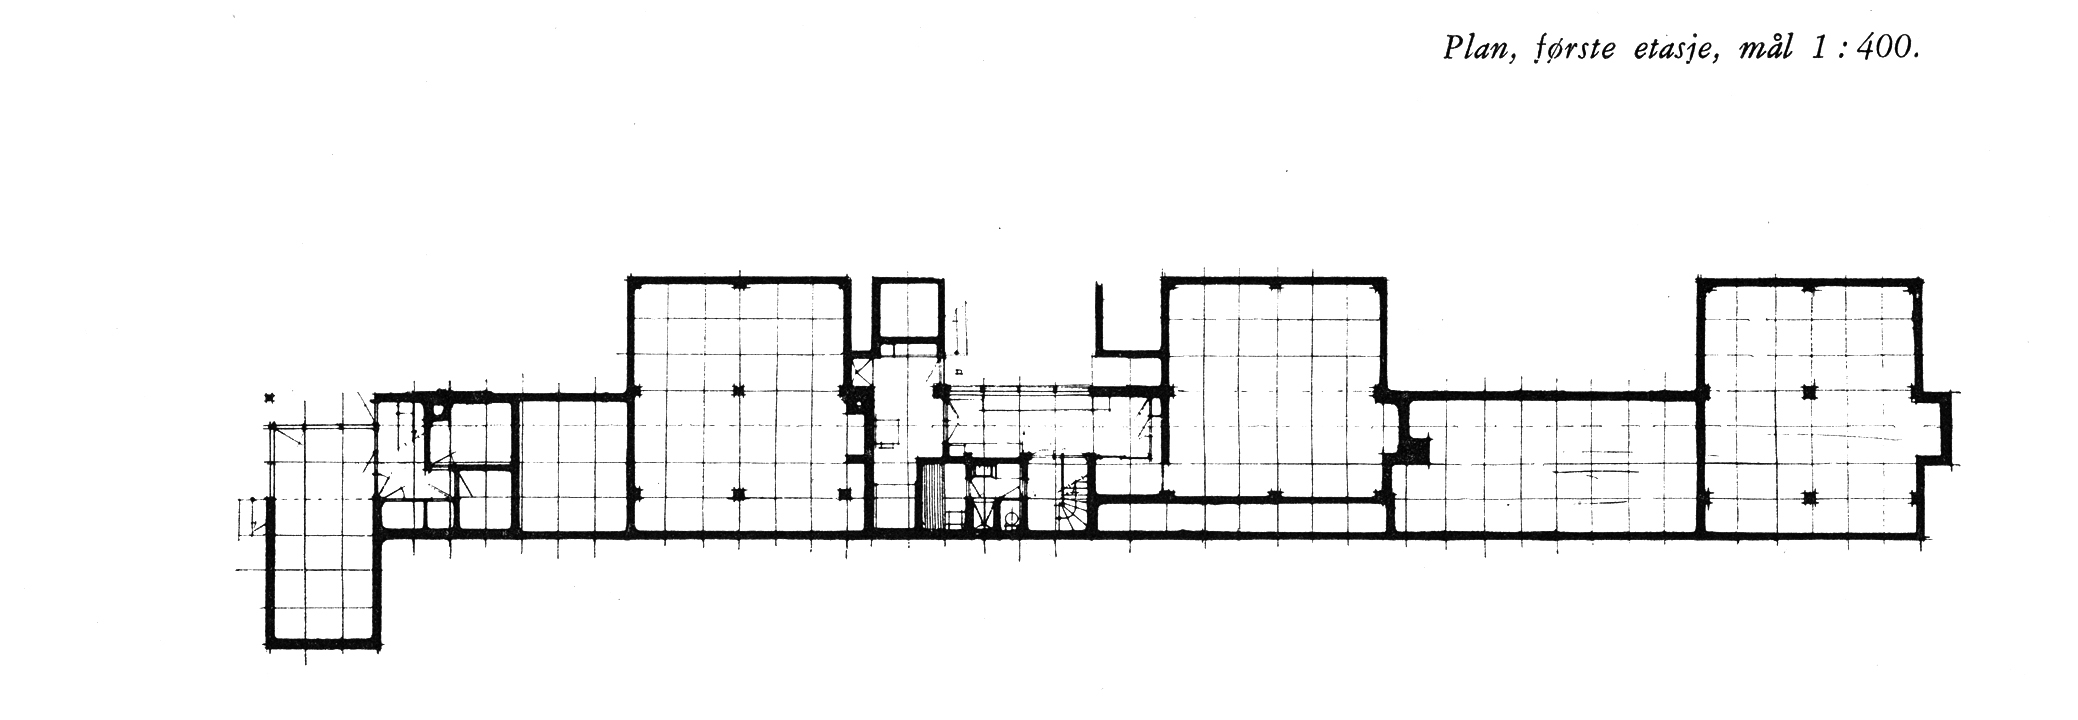 Plan showing the three houses at Planetveien. Note that Korsmo removed the central steel column from the living room of his central unit. As published in _Byggekunst_, n.7 (1955).